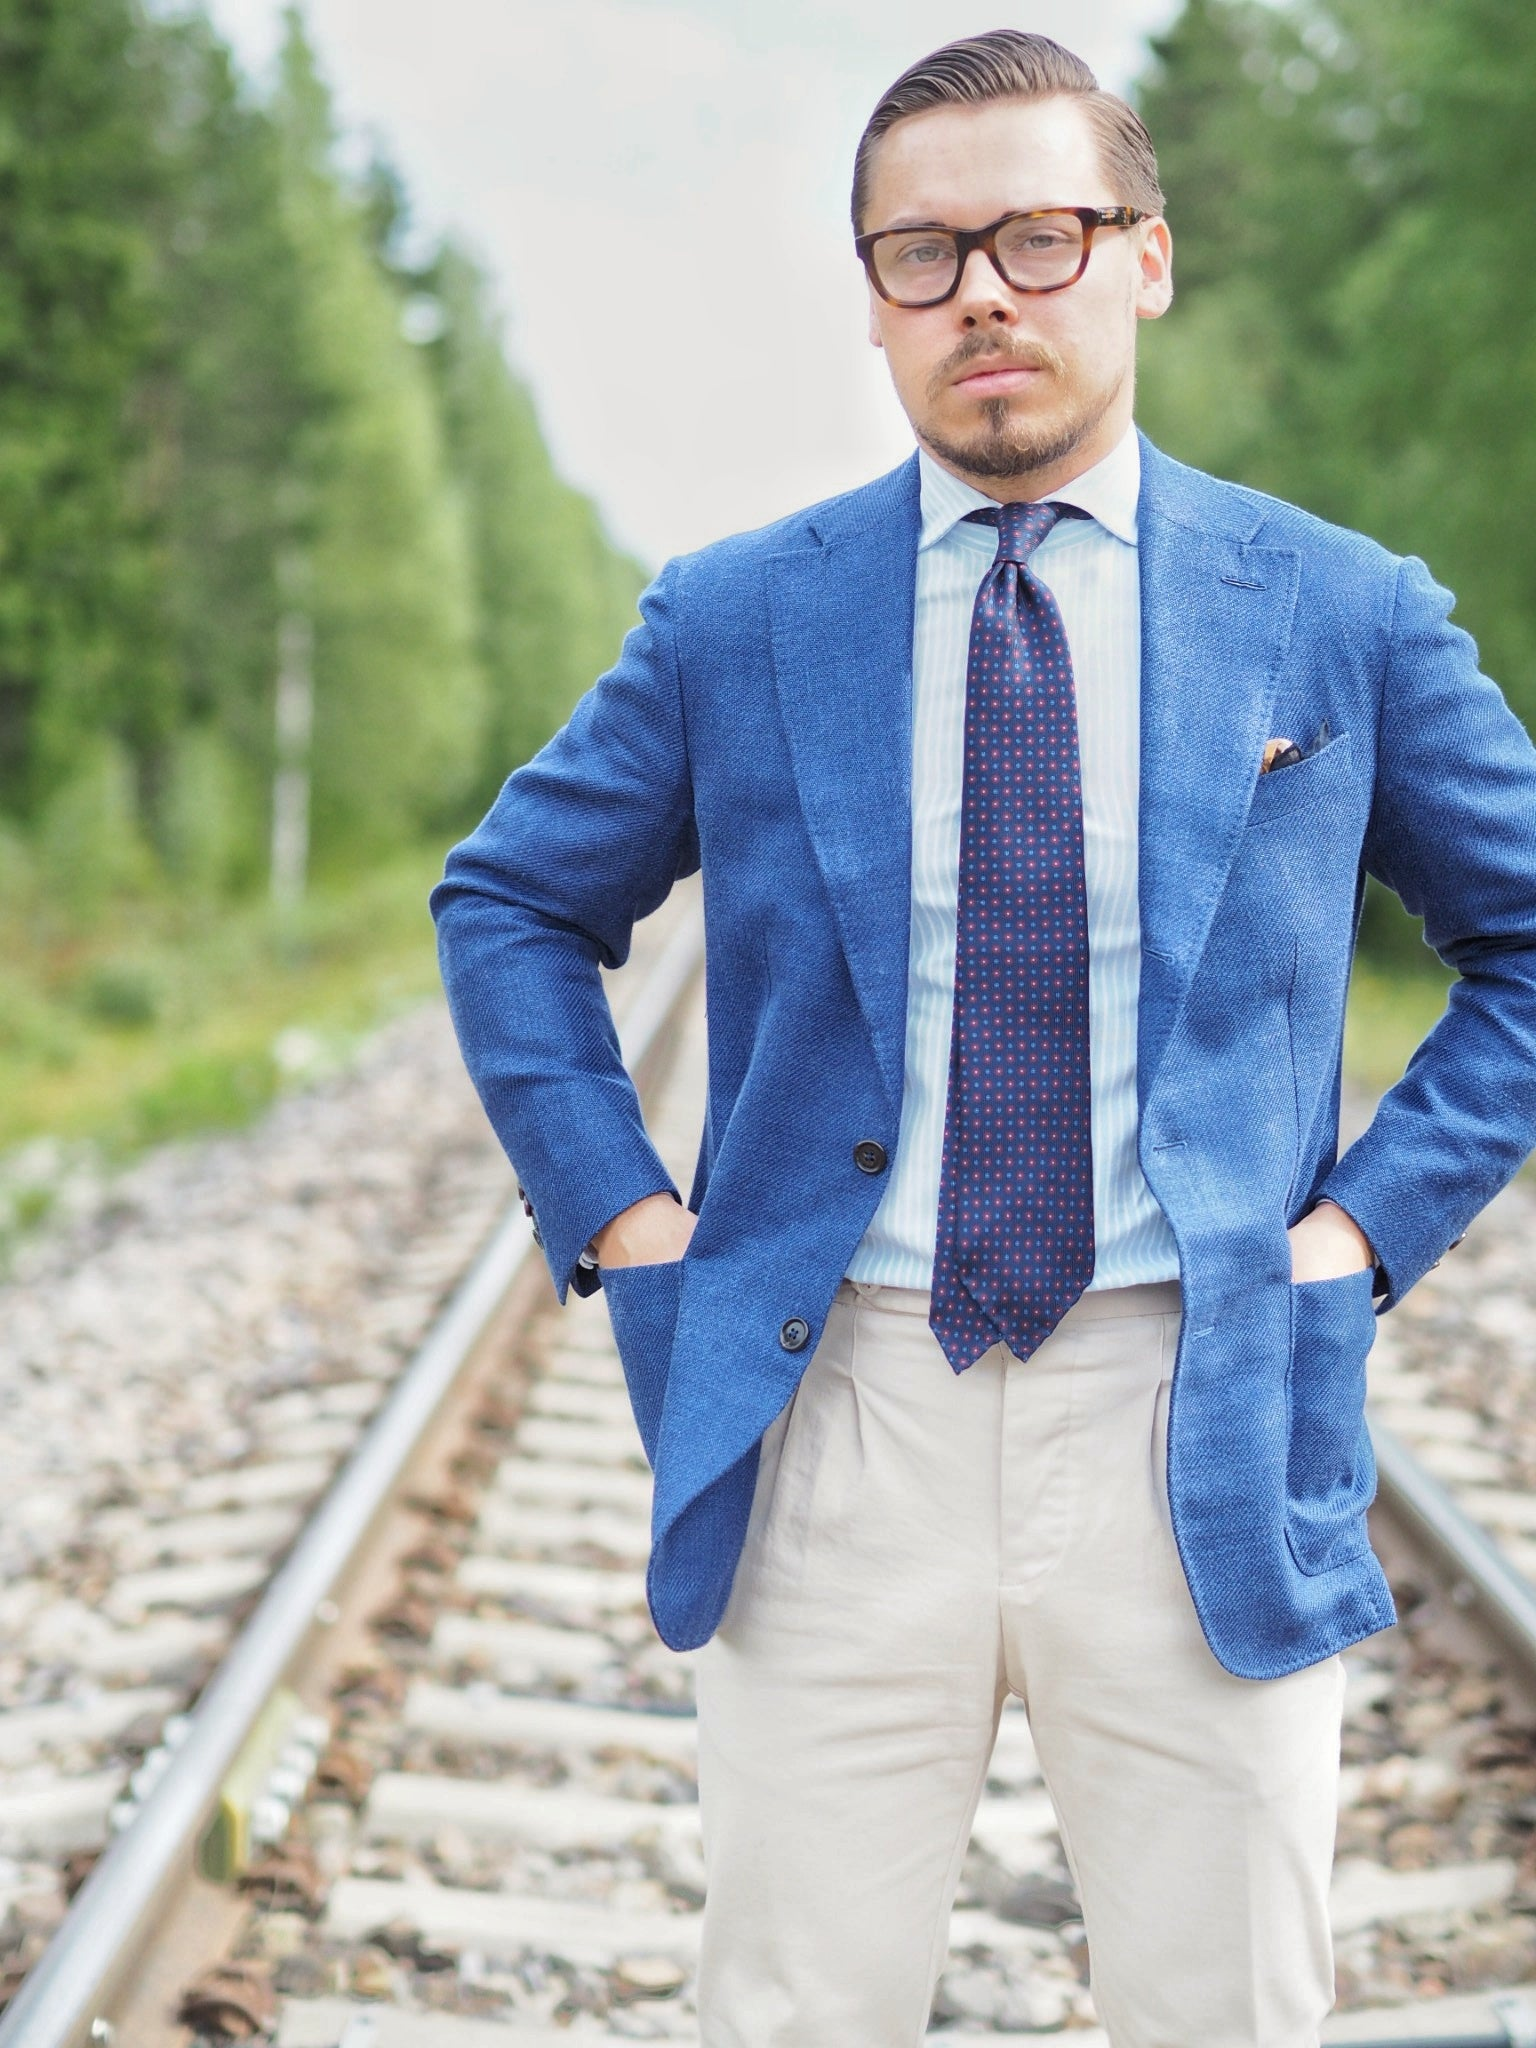 Blue suit jacket as a sport coat - Light shades for summer